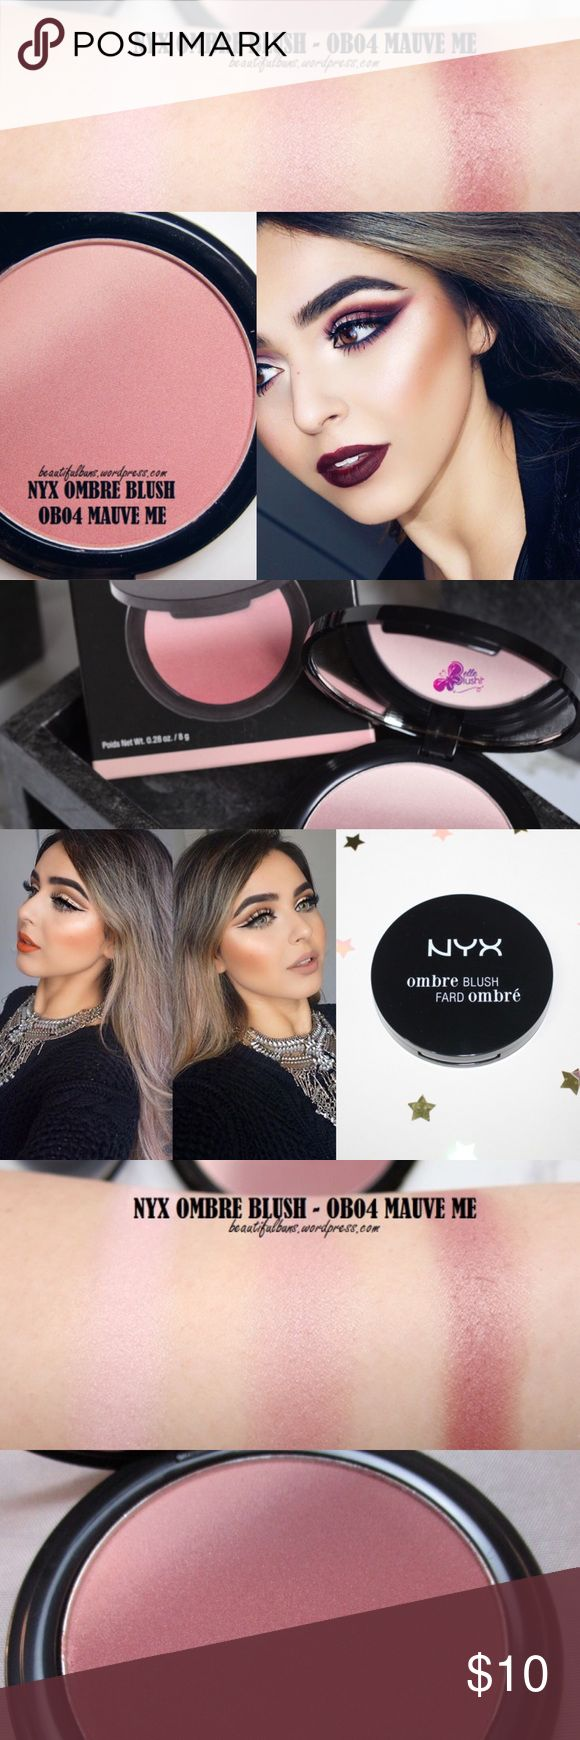 🔅NEW NYX Ombré Ombré Blush *Mauve Me*🔅W/GIFTS!😍 🔅BRAND NEW & UNOPENED🔅NYX OMBRÉ BLUSH IN *MAUVE ME*🔅Treat ur cheeks to a *radiant* flash of color w/ NYX's NEW Ombré blush, a new gradient blush inspired by the latest ombre trend! This must have formula features 2 silky colors blended into one perfectly coordinated shade combo! It's like they were meant for each other!🔅EXPEDITED SHIPPING🔅BUNDLE W/ ONLY 2 MORE ITEMS FOR AN *ADDITIONAL* 15% OFF OR W/ 1 MORE ITEM FOR AN *EXTRA* 10%…